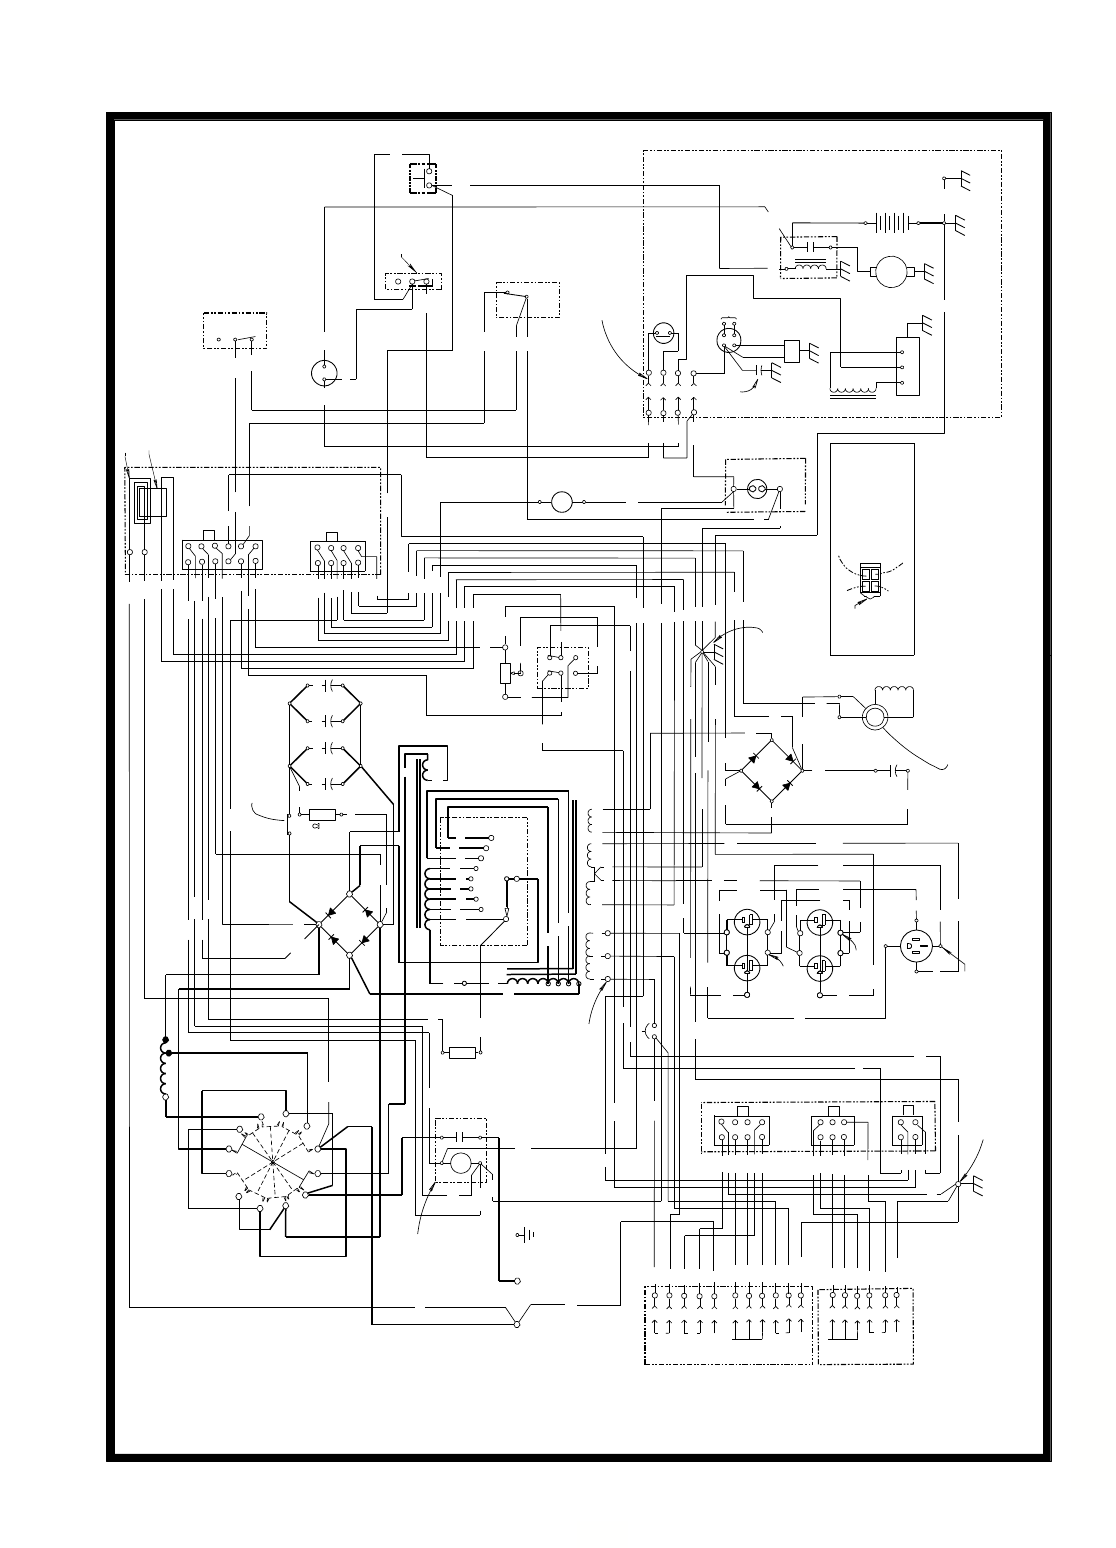 Lincoln Cv 250 Wiring Diagram Pdf from manualsdump.com